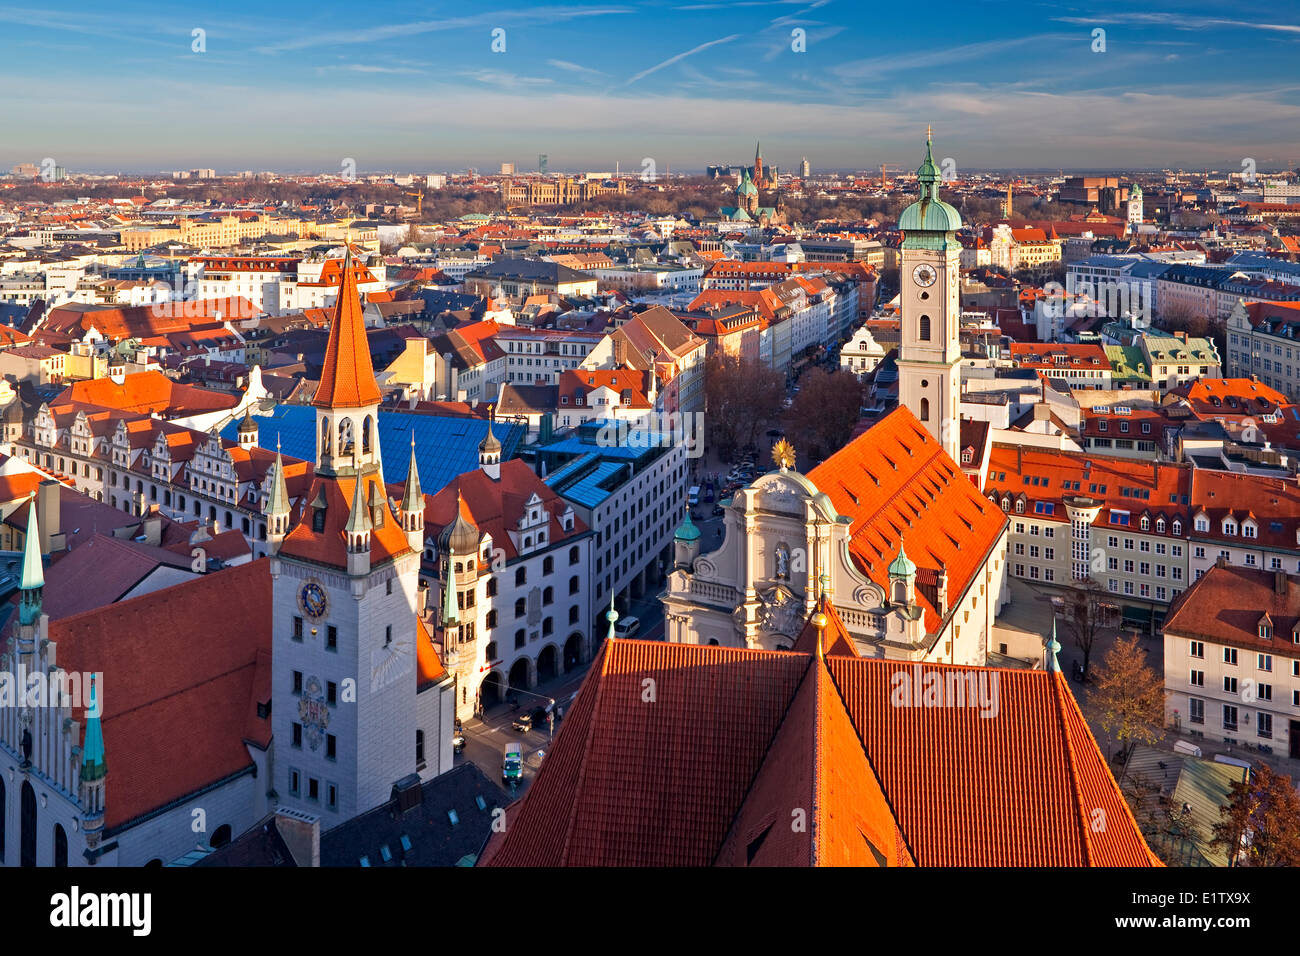 Aerial view over the Altes Rathaus (Old City Hall) Heilig-Geist-Kirche (Church the Holy Spirit) the City München - Stock Image